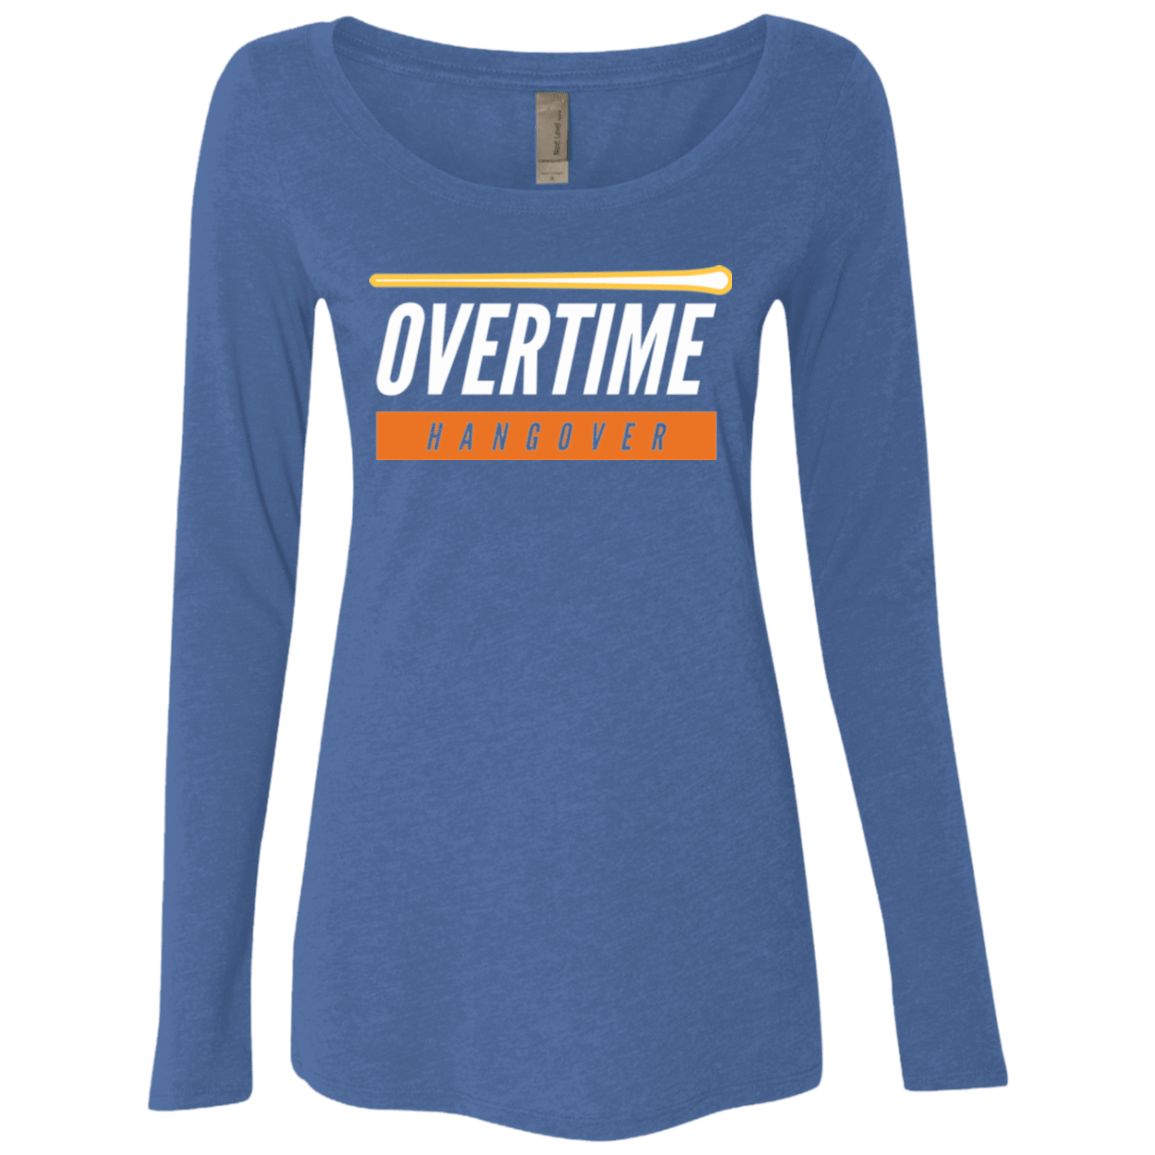 99 Percent Hangover Women's Triblend Long Sleeve Shirt